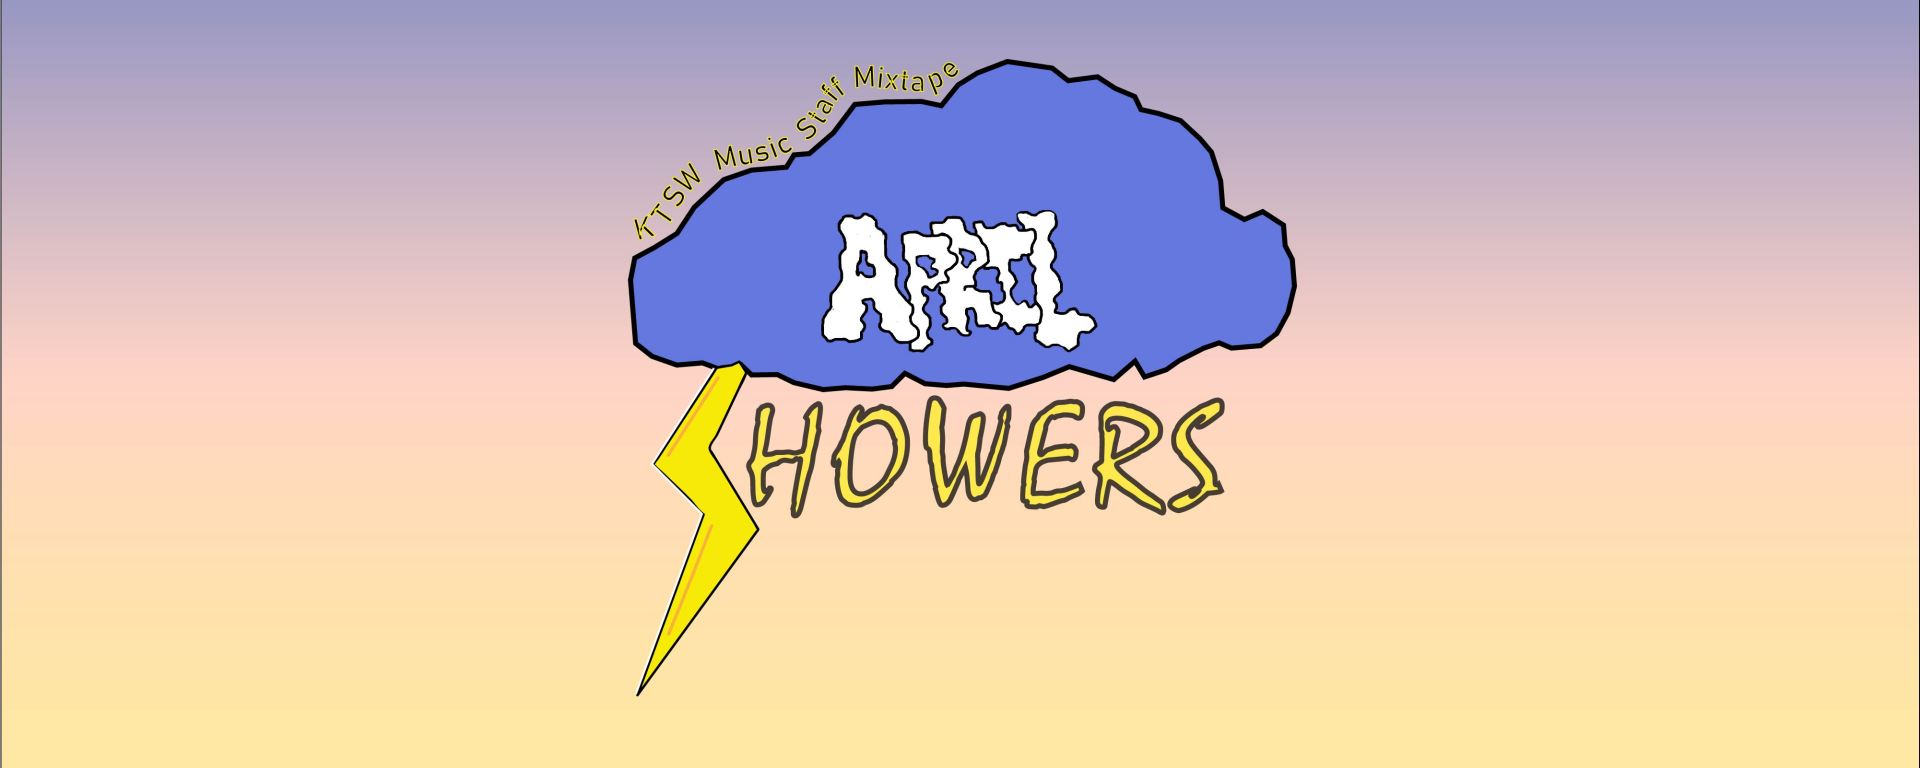 """A storm cloud with the phrase """"KTSW Music Staff Mixtape"""" around the top left with the """"April Showers"""" beneath on sunset gradient background"""